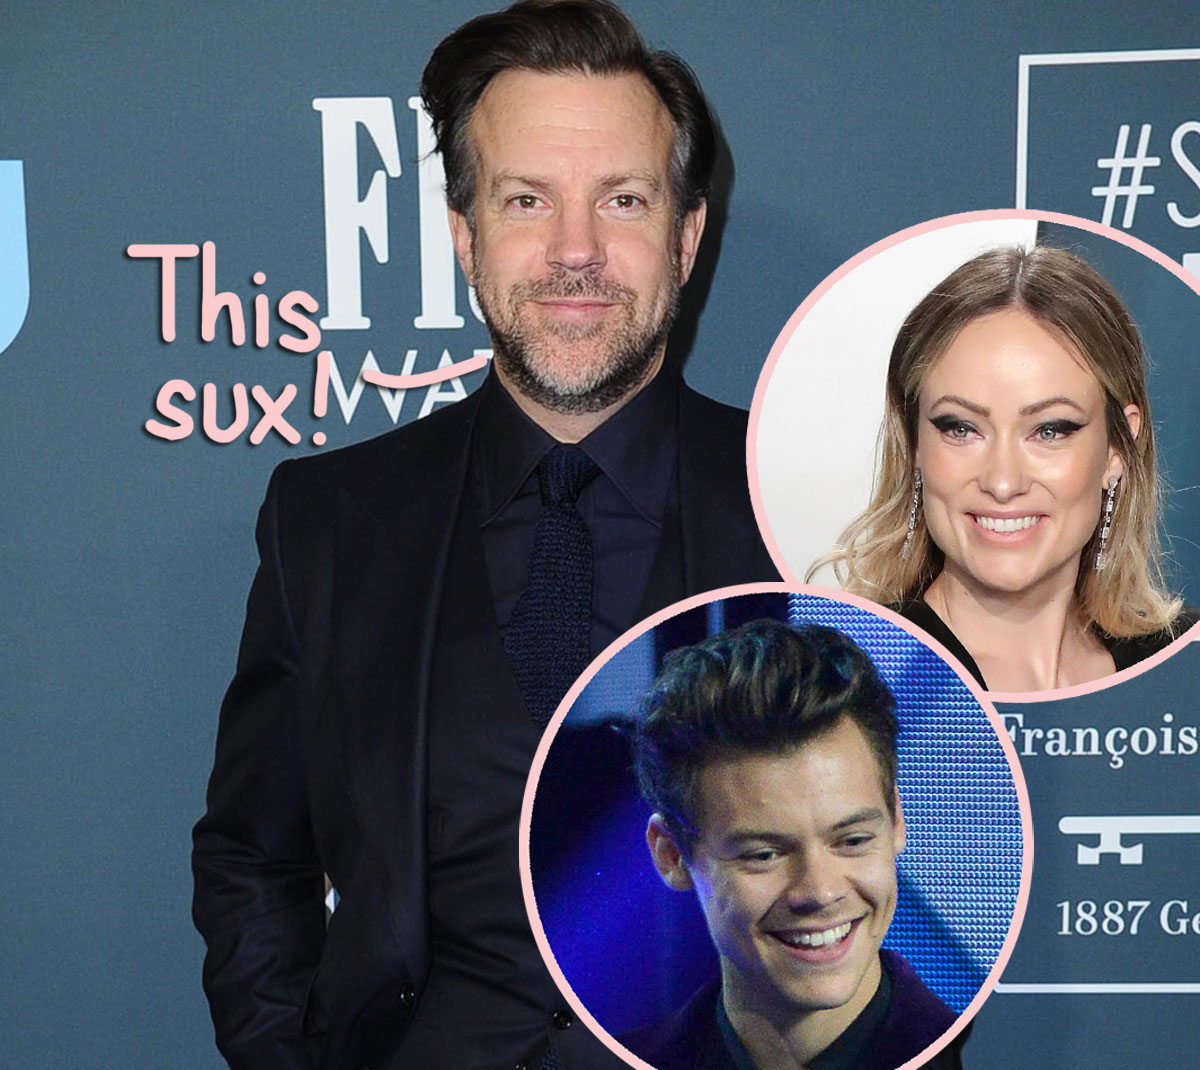 Jason Sudeikis Is Reportedly 'Broken' Over Olivia Wilde's New Romance With Harry Styles